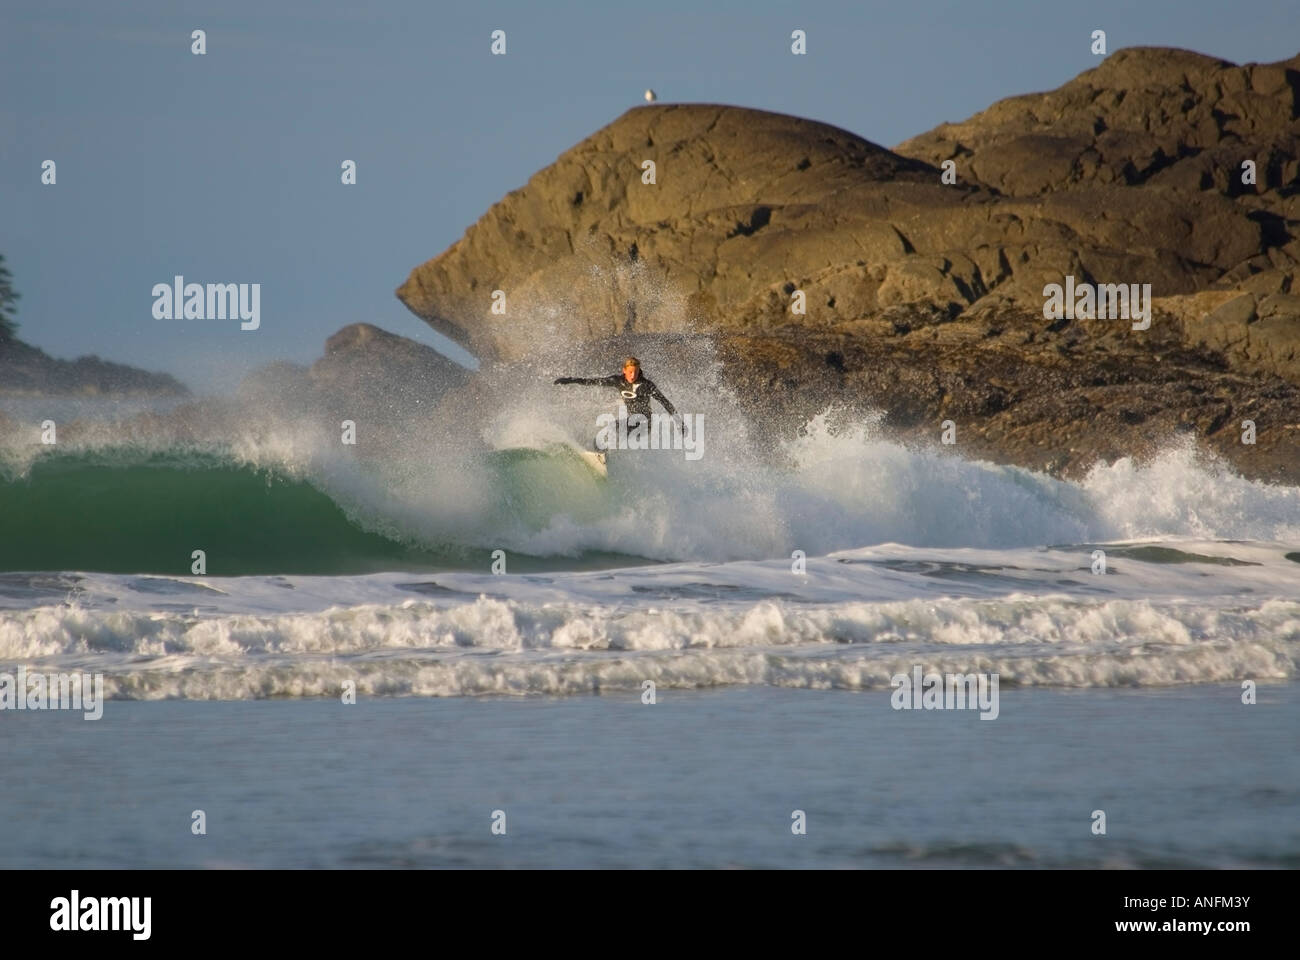 A surfer challenges the breakers at Cox Bay, near Tofino, on the west coast of Vancouver Island, British Columbia, - Stock Image